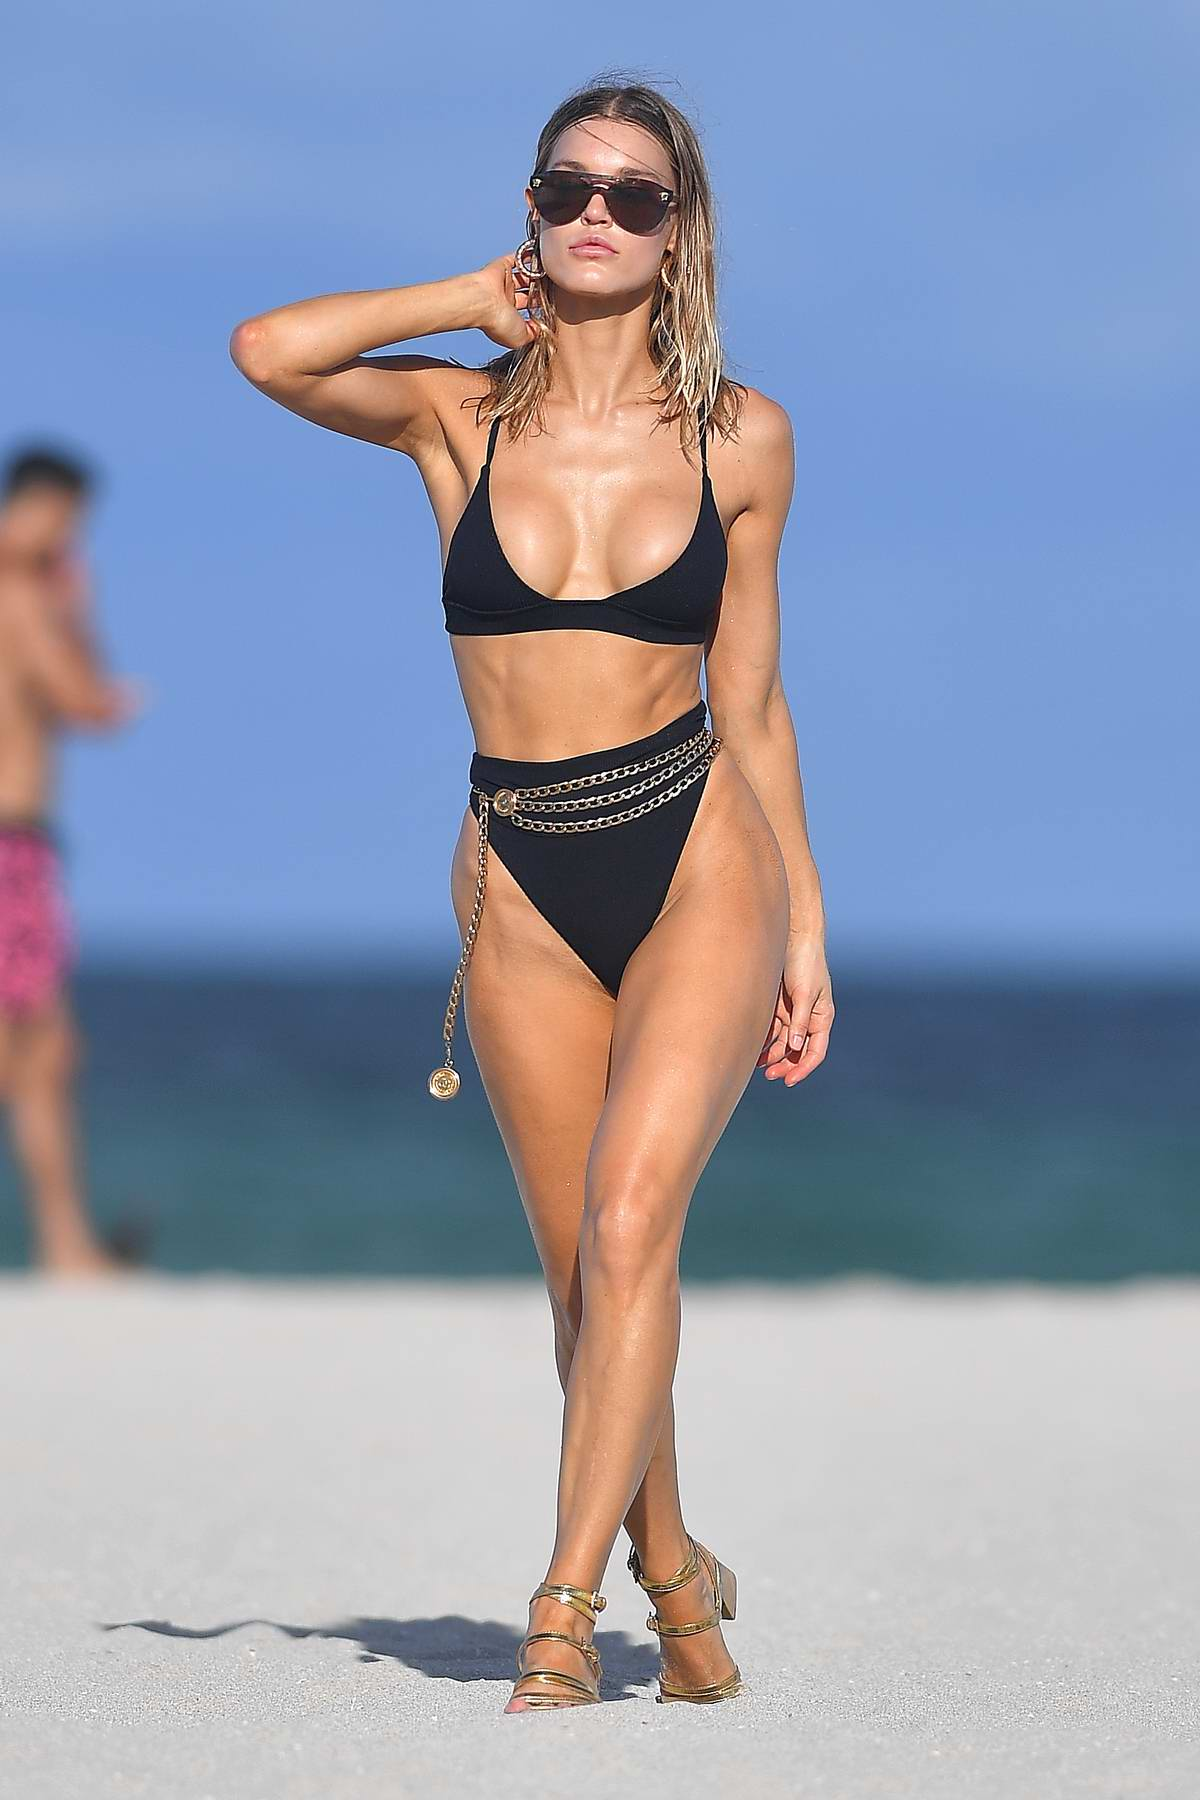 Joy Corrigan sizzles in a black bikini during a photoshoot in Miami Beach, Florida